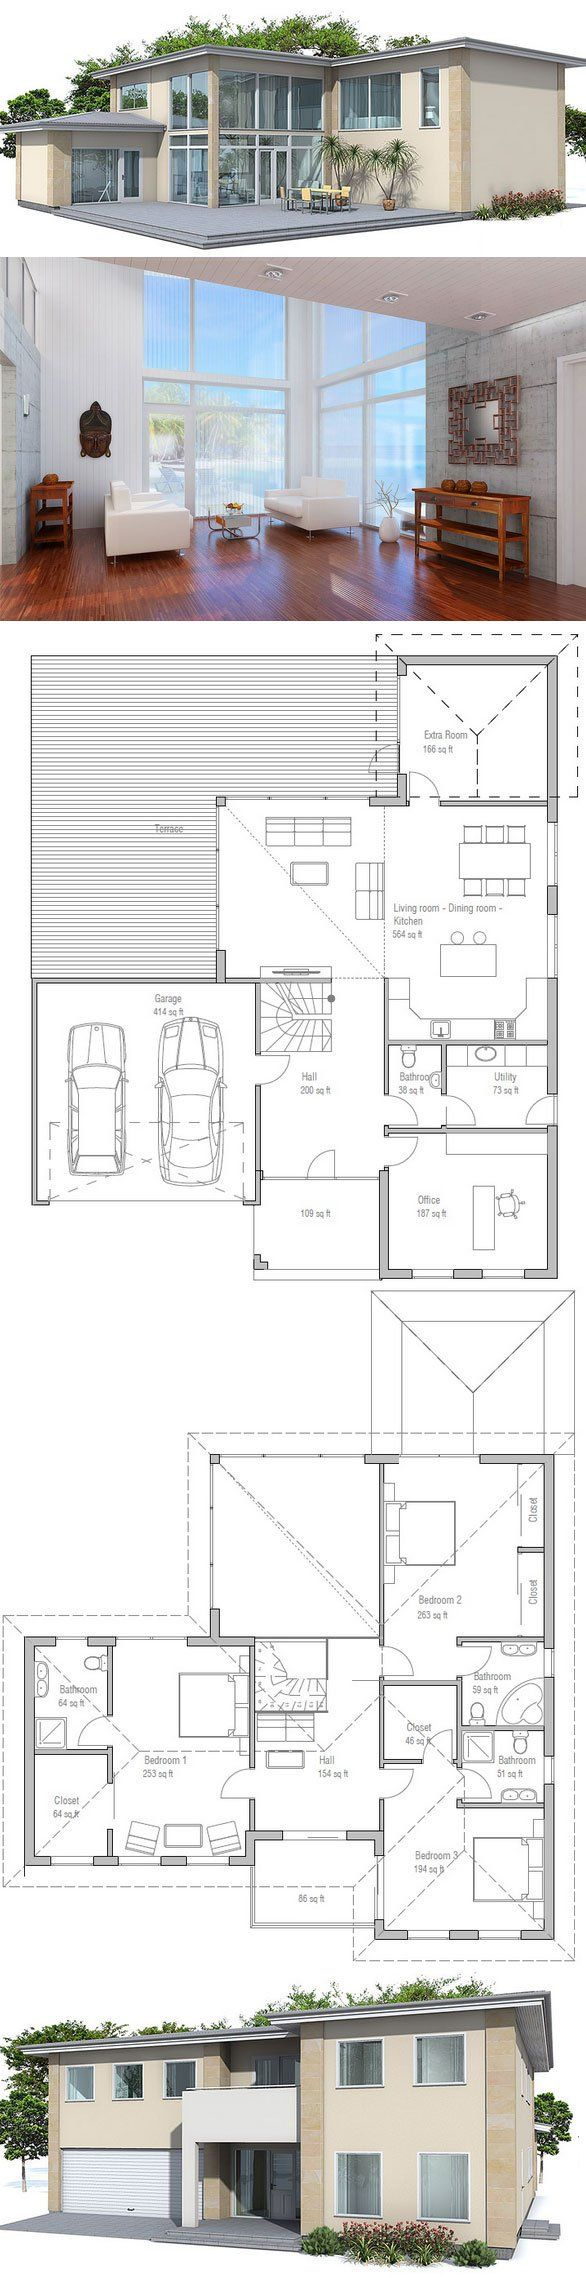 Large modern house plan. Four bedrooms, two living areas, two car garage. Spacious living & dining areas.